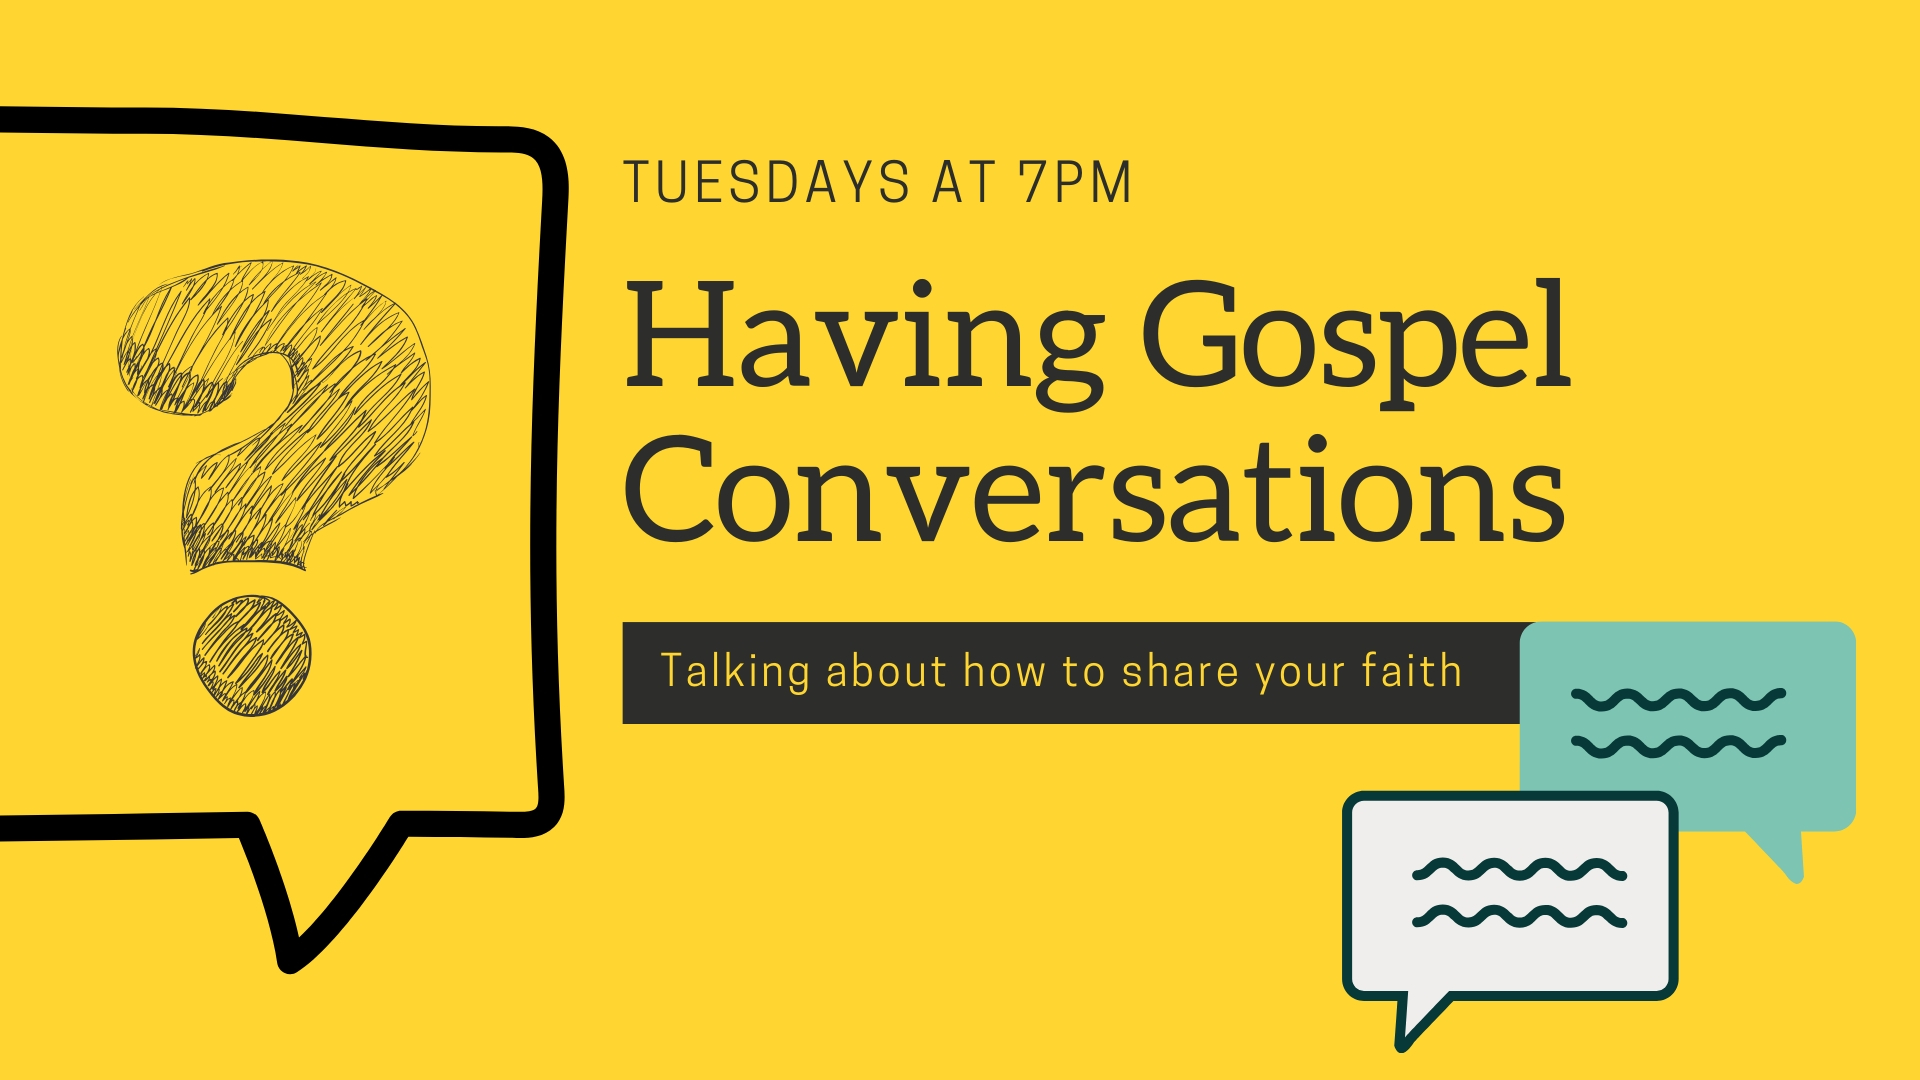 Having Gospel Conversations - Week 9 Image